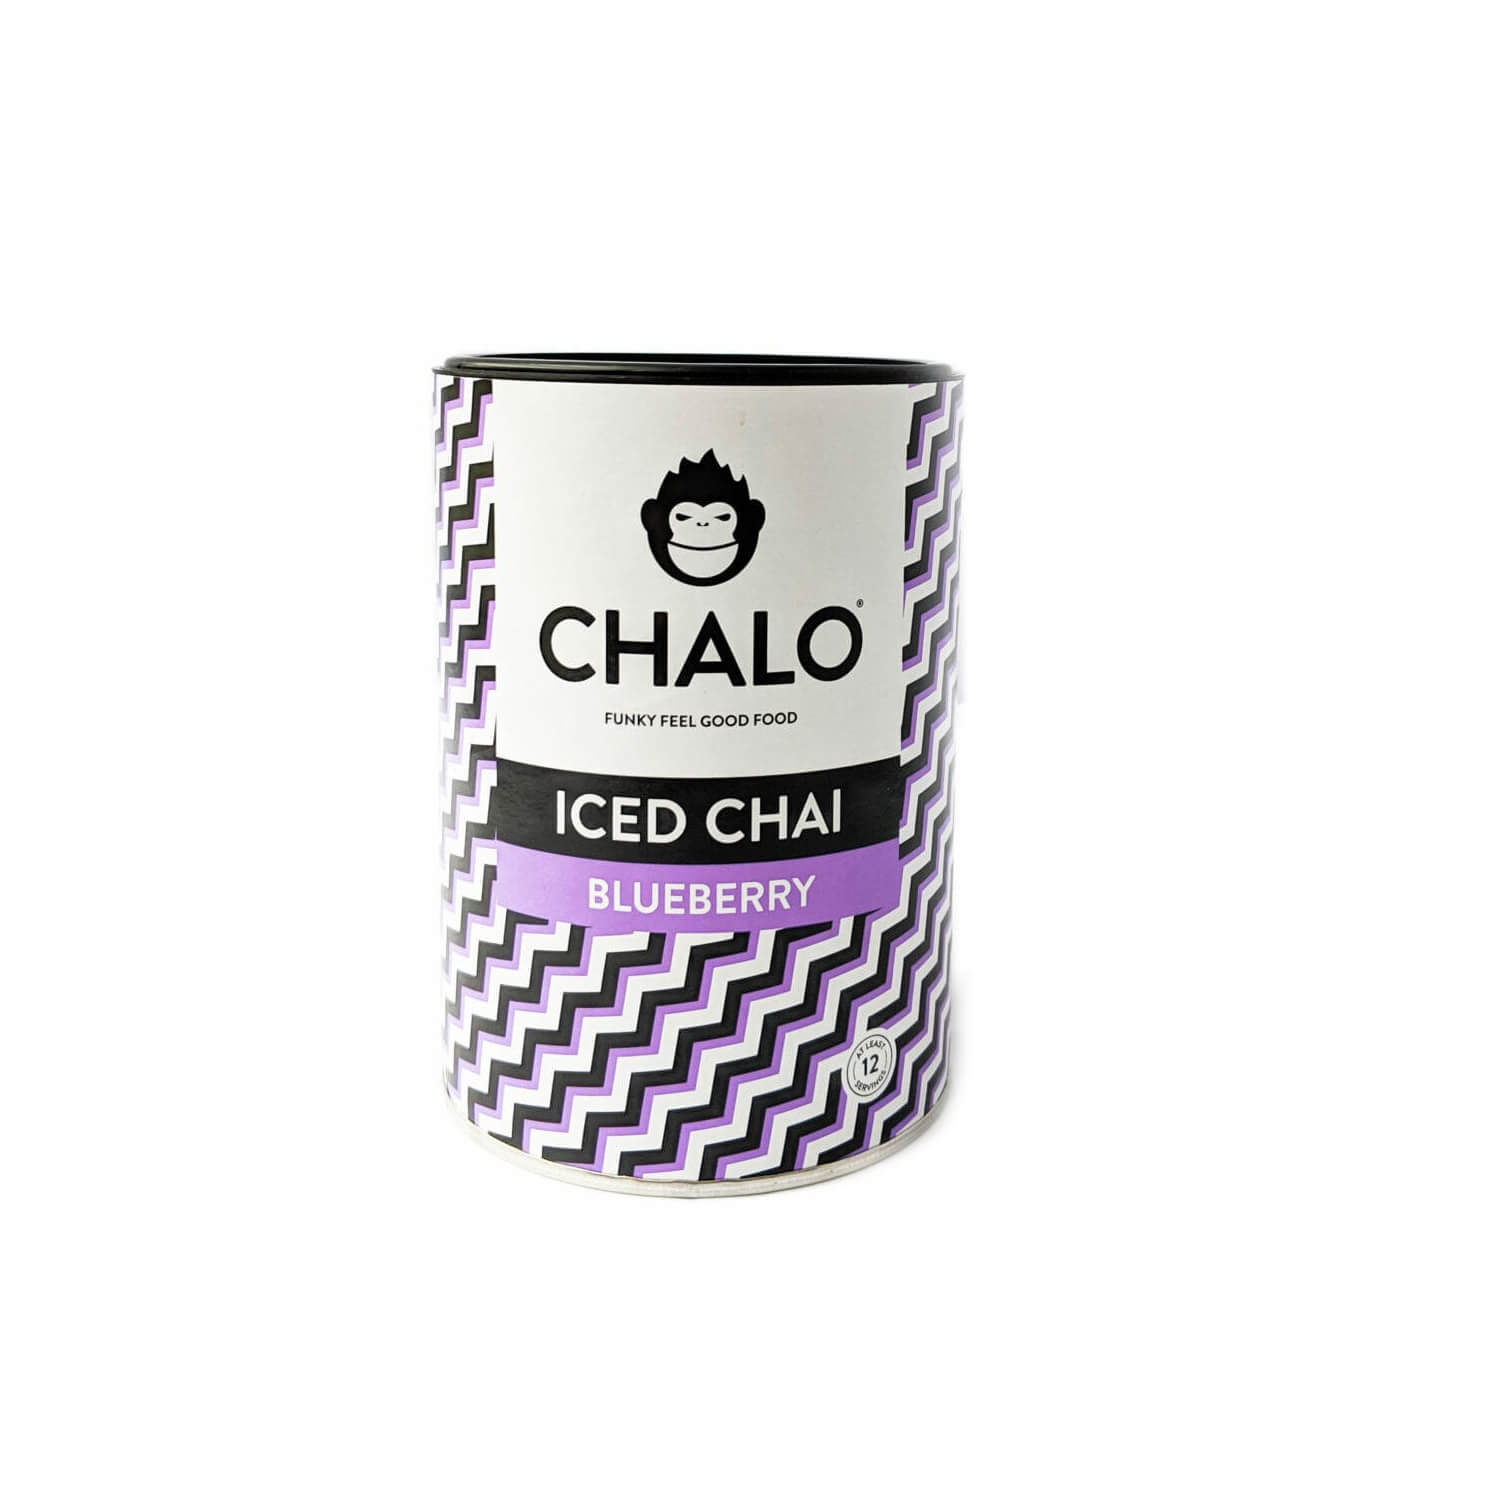 Chalo - Blueberry Iced Chai - 300 g